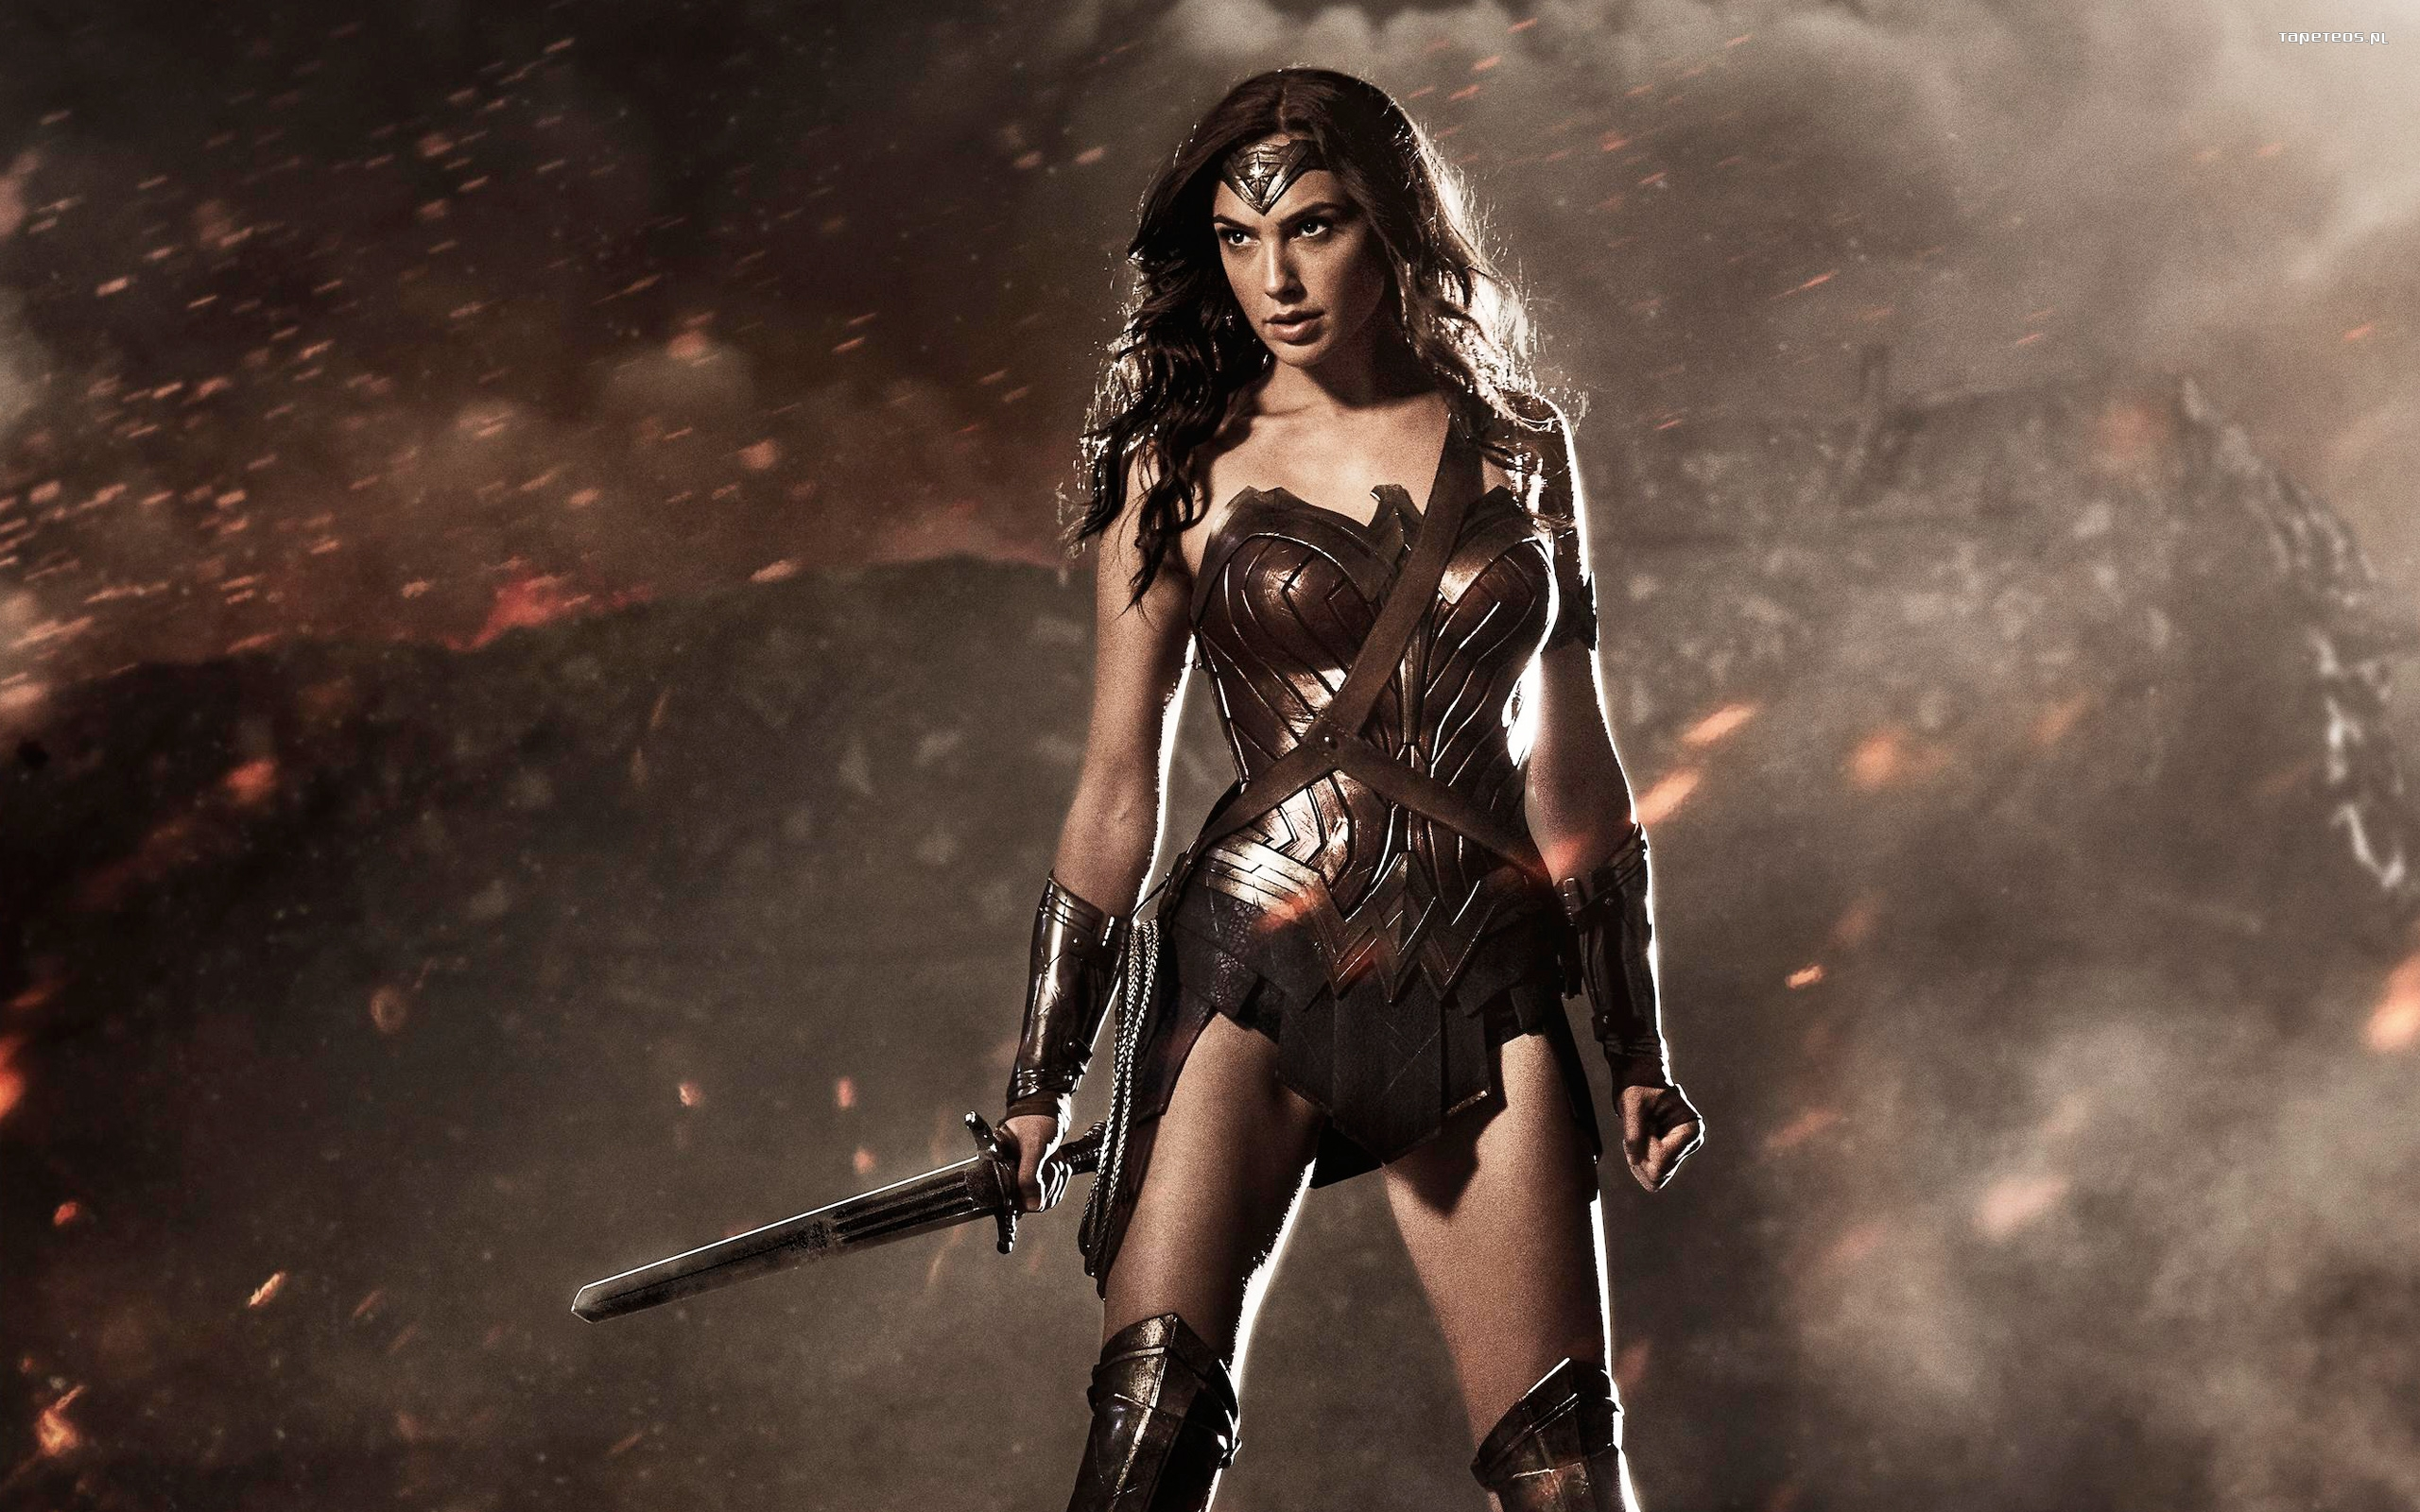 Batman v Superman Dawn of Justice 005 Gal Gadot, Wonder Woman